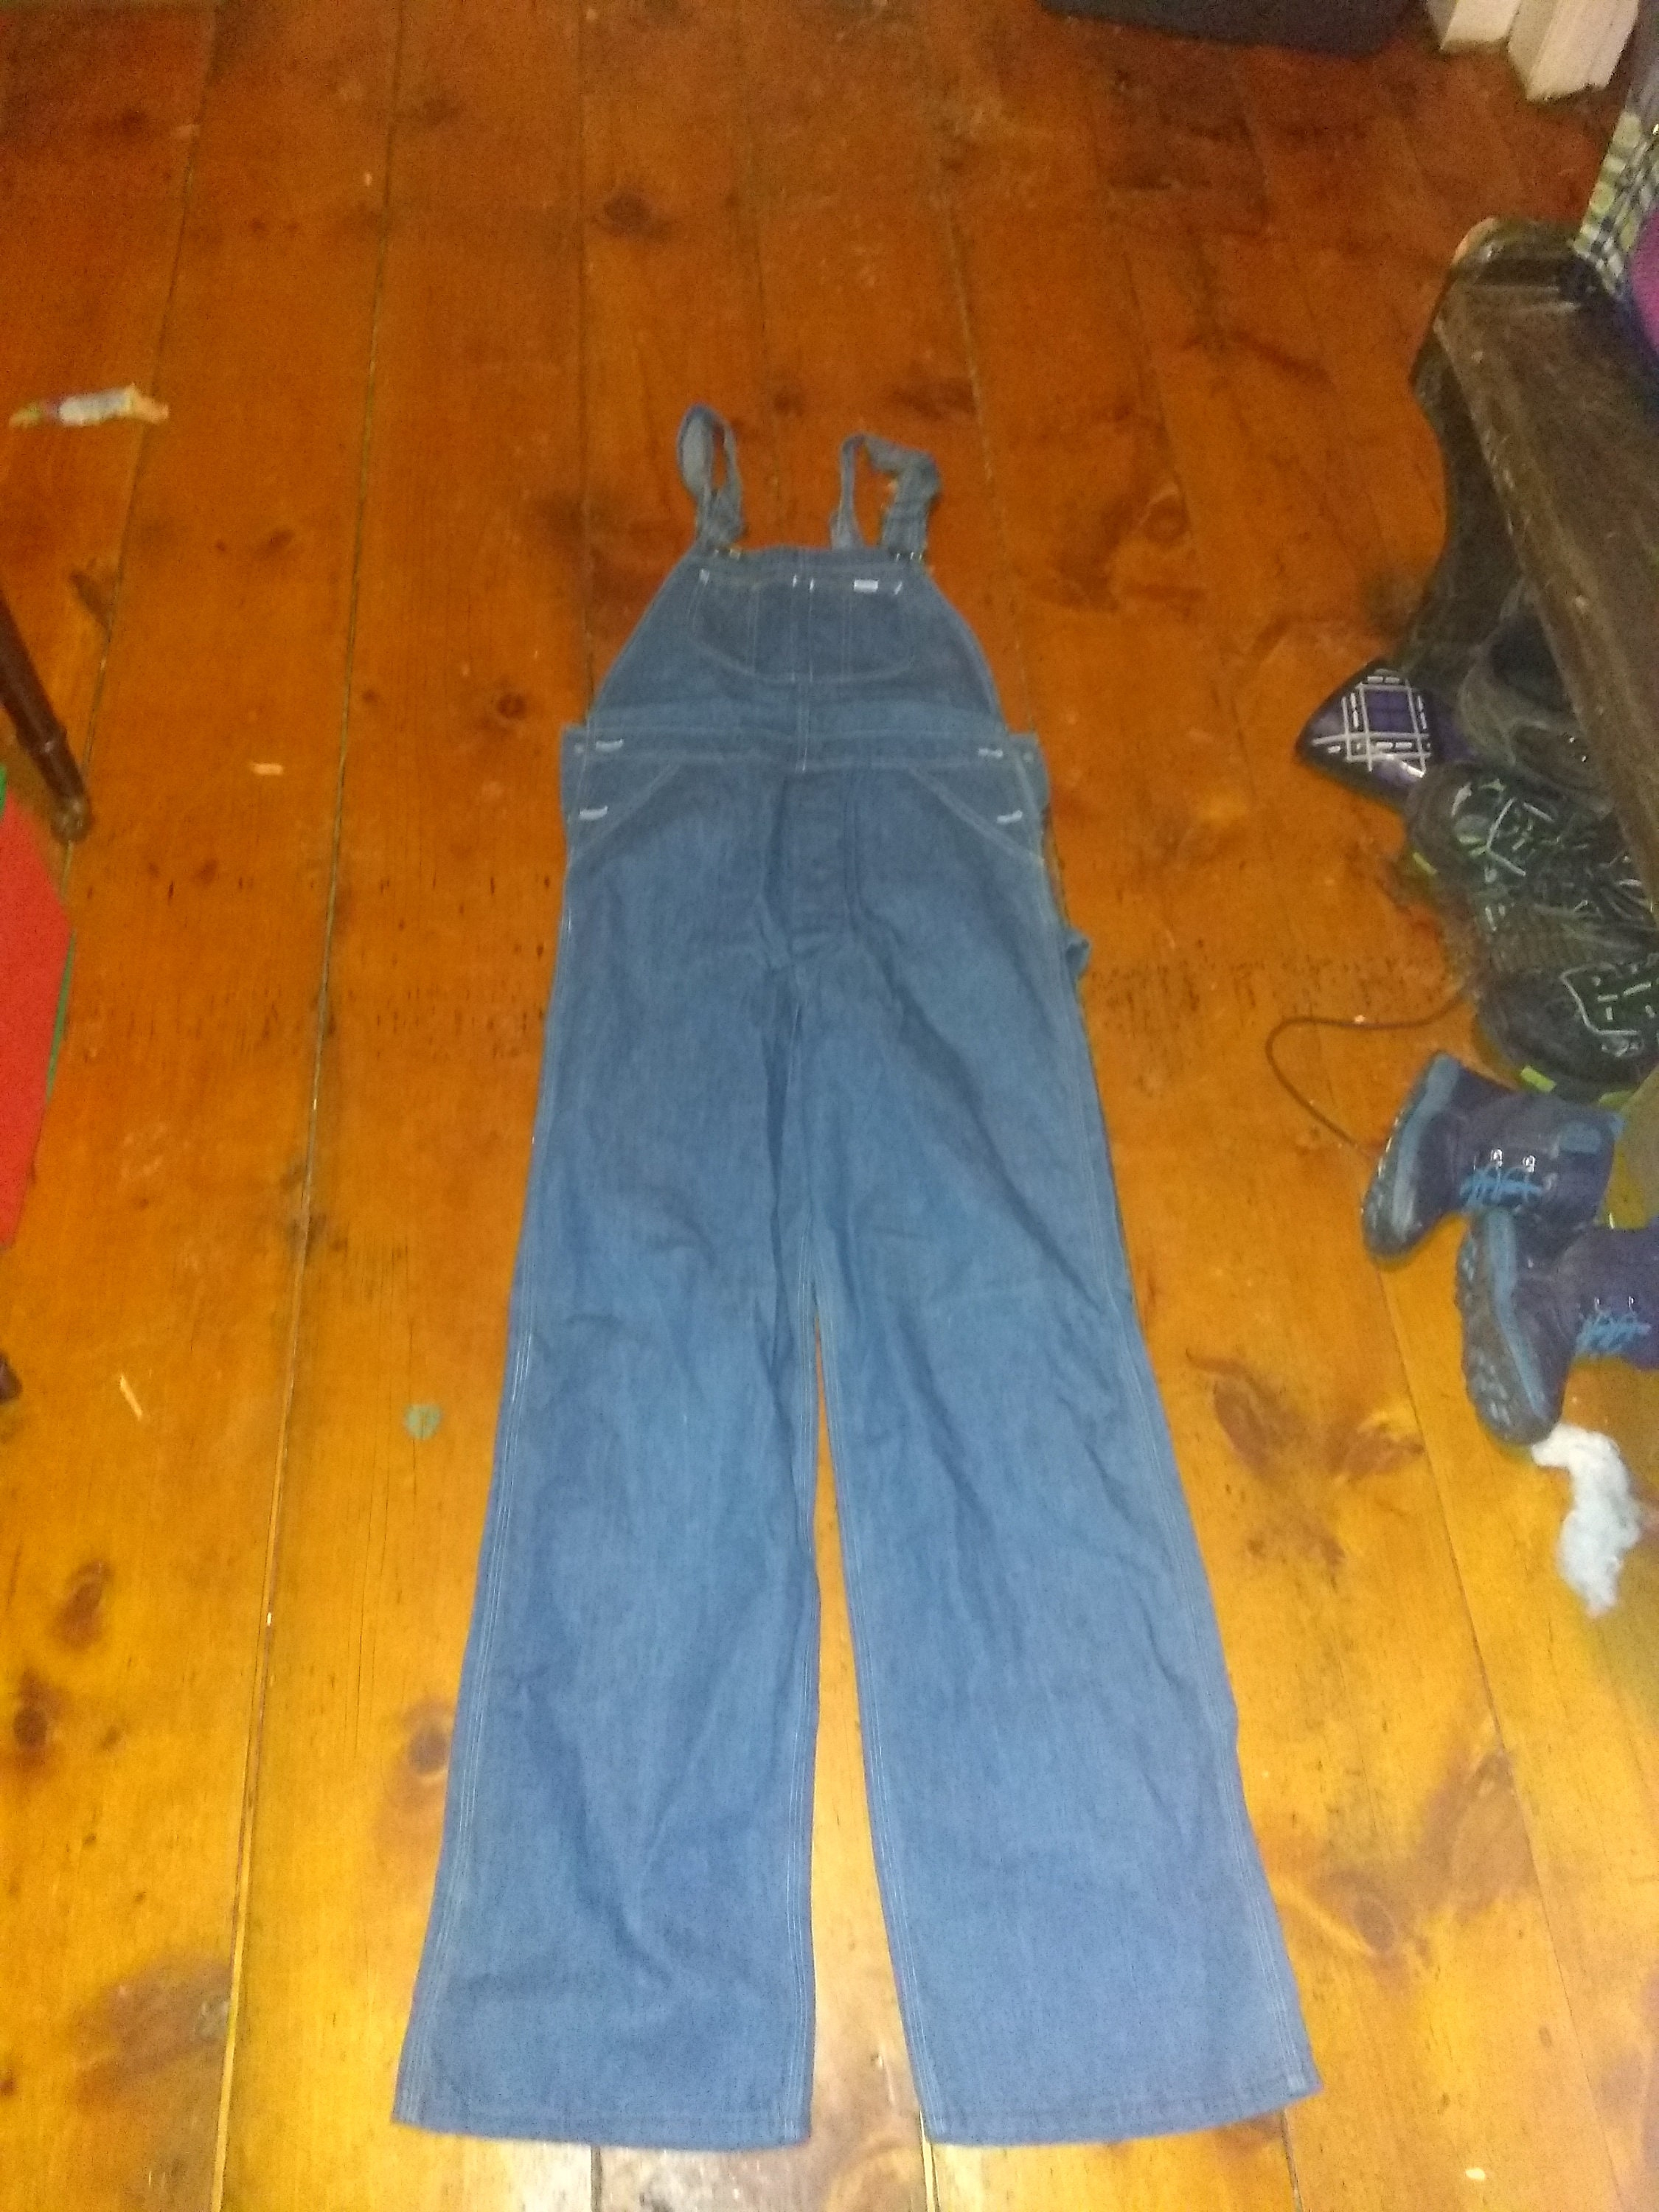 Vintage Overalls & Jumpsuits Deadstock Lee Bib Overalls Jeans Cotton Painter Pants Denim Made Usa Pick Size High Waist Wear T Shirt Sneakers Shoes Boots Sweater Jacket $100.00 AT vintagedancer.com